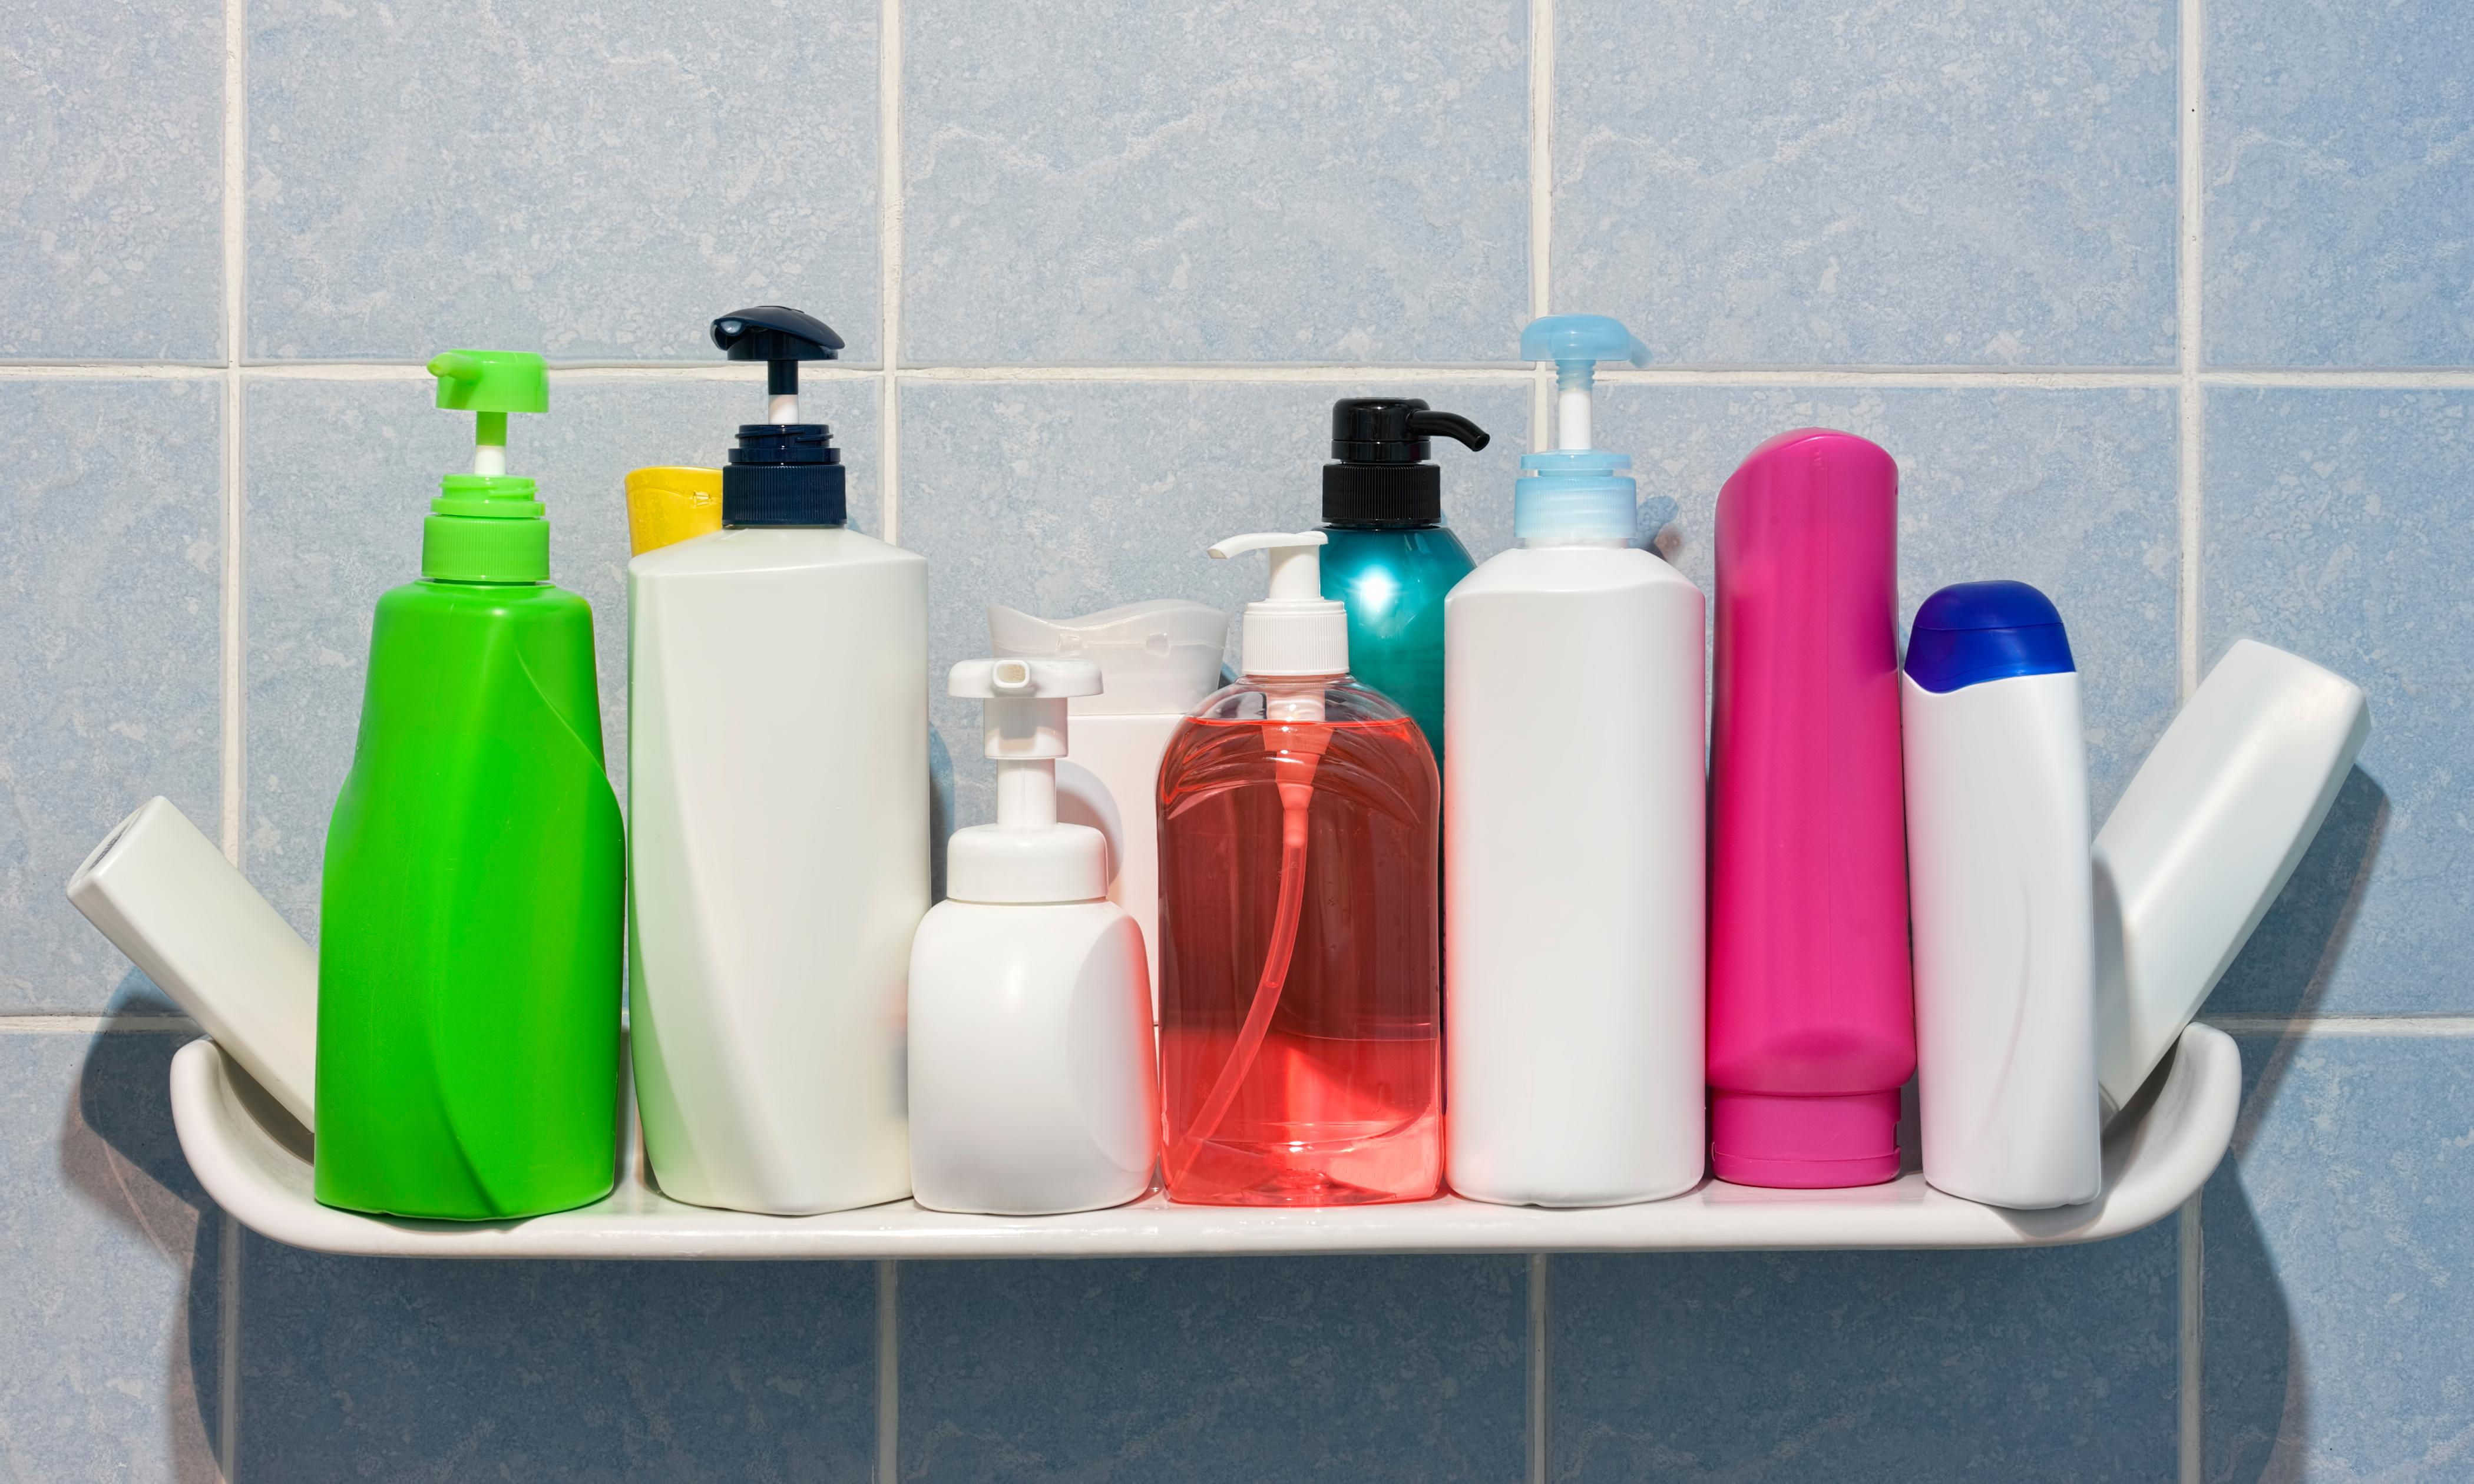 Bathroom brands need to come clean on recycling, says consumer watchdog